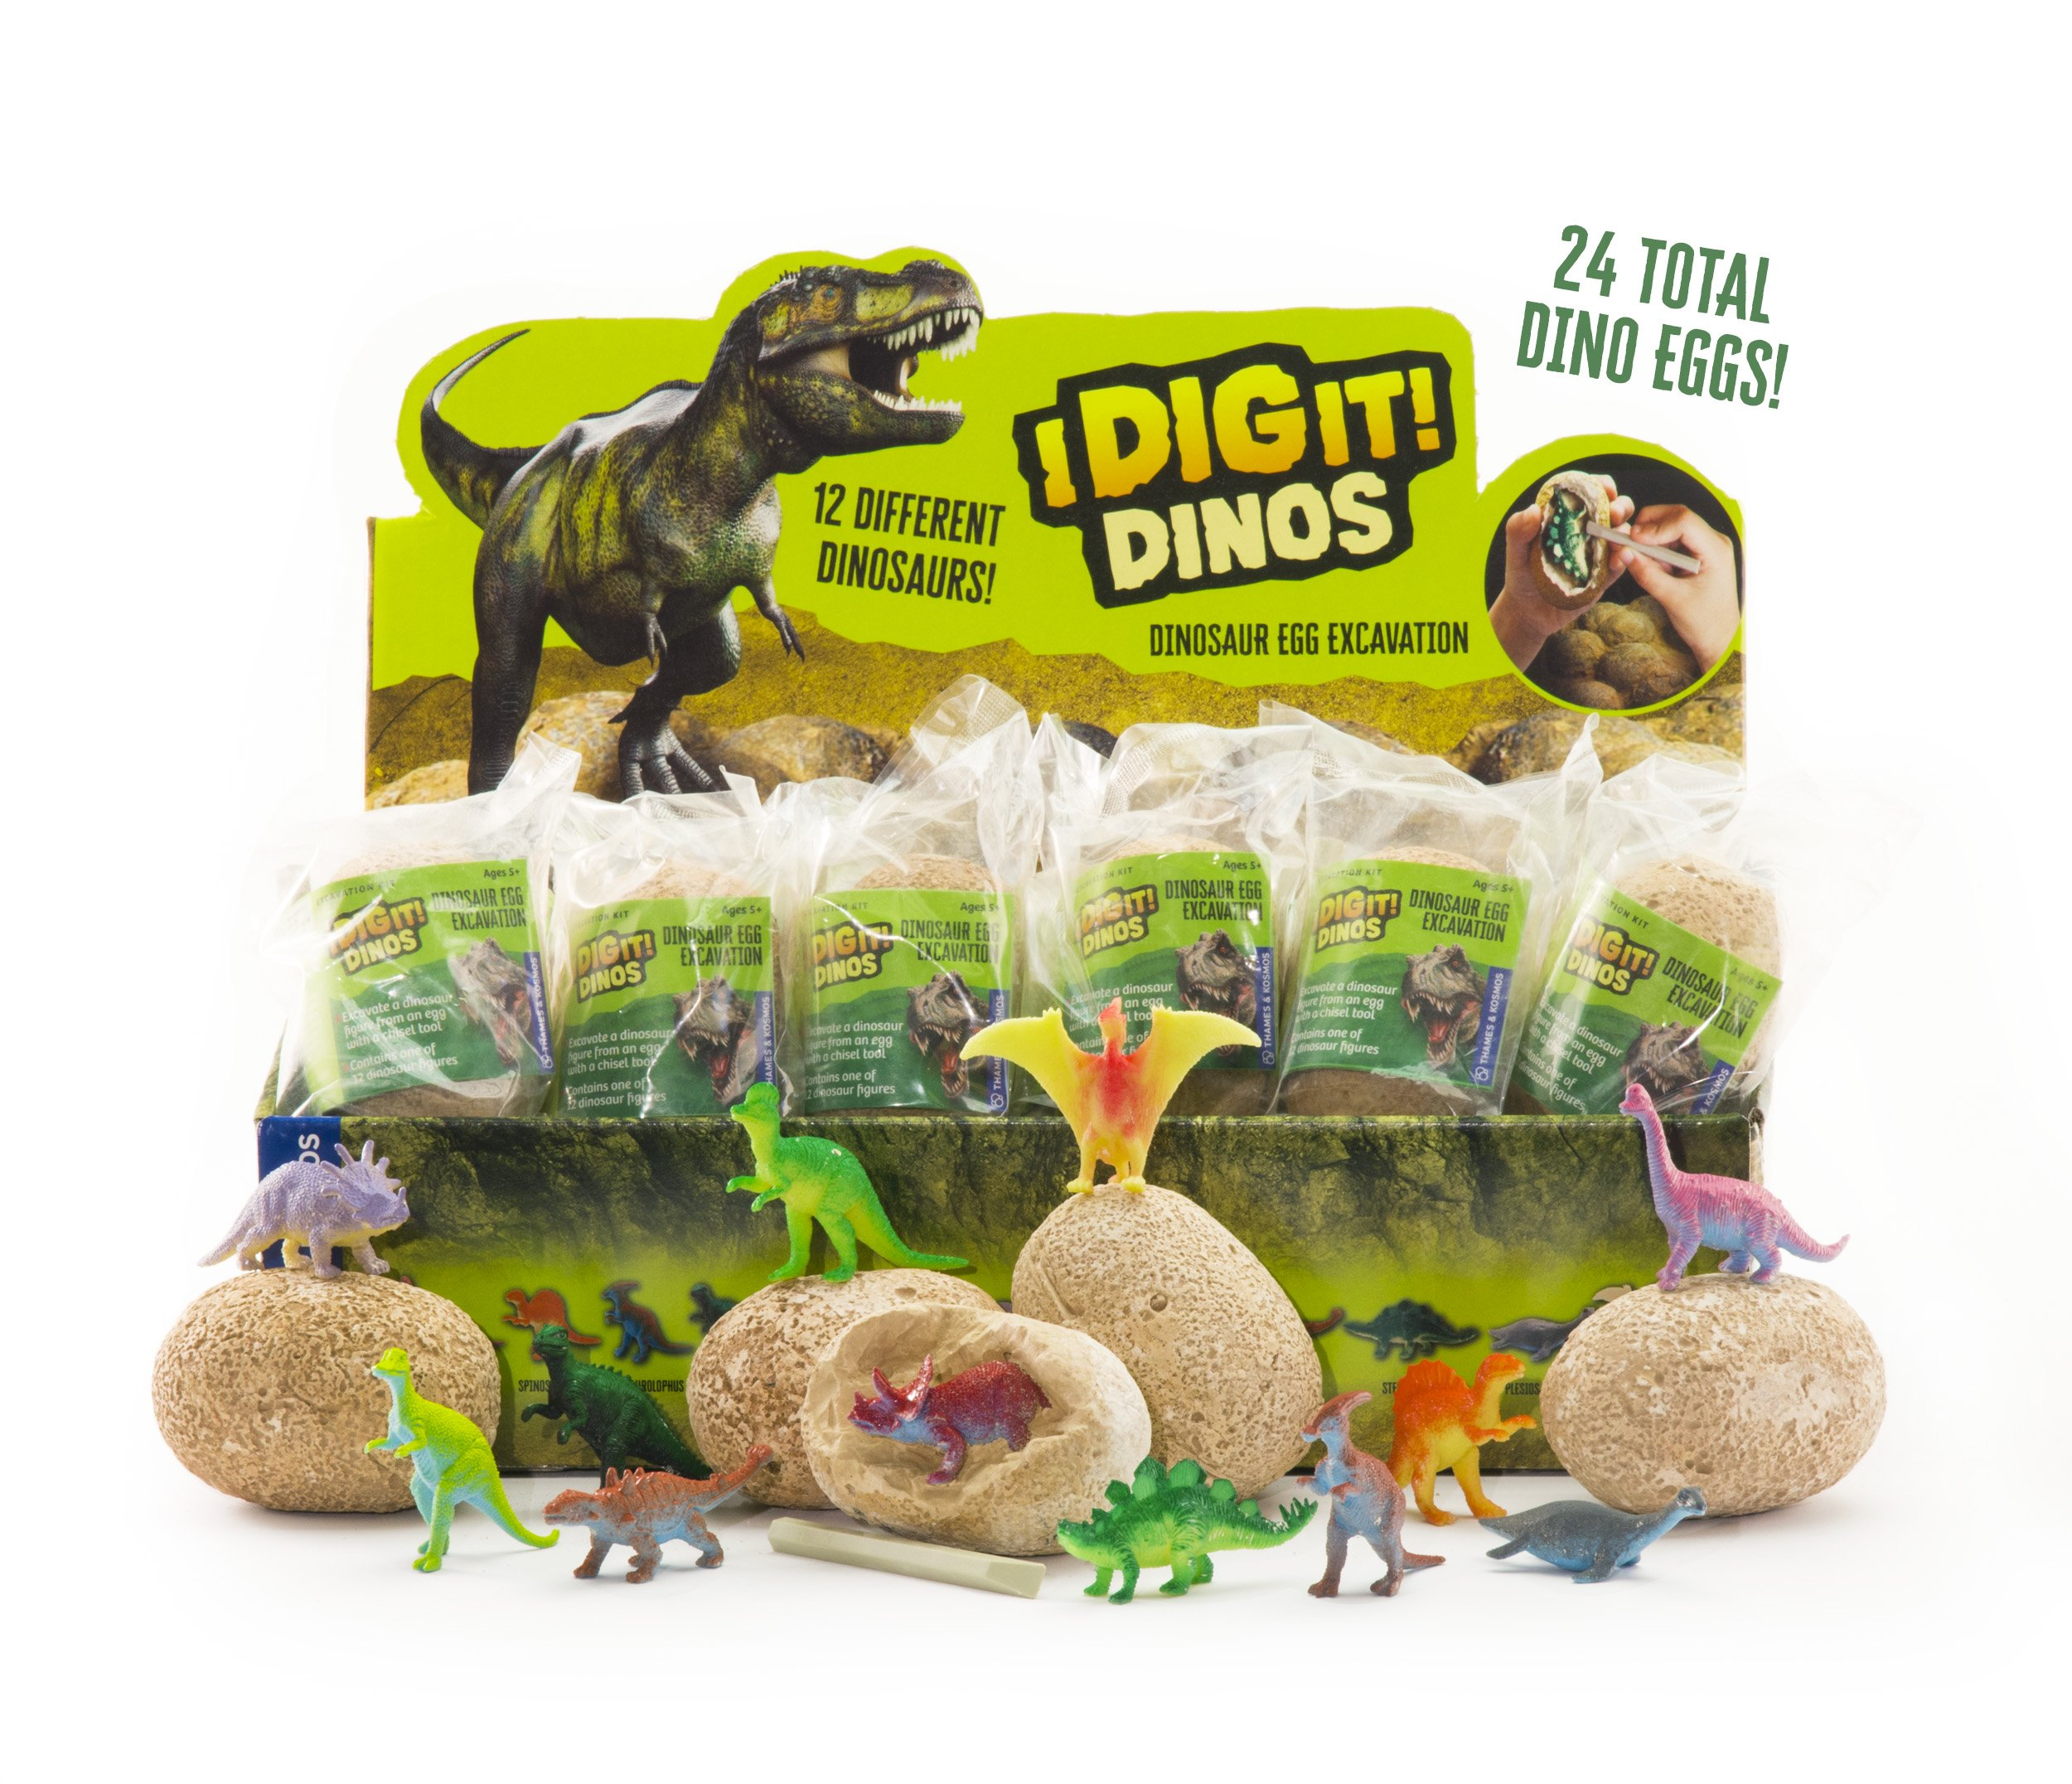 Thames & Kosmos I Dig It! Dinos - 24 Dinosaur Egg Gift Set Excavation Kit, Party Favors, Stocking Stuffers, Easter Baskets, Collect Them All, Includes Bonus Content from